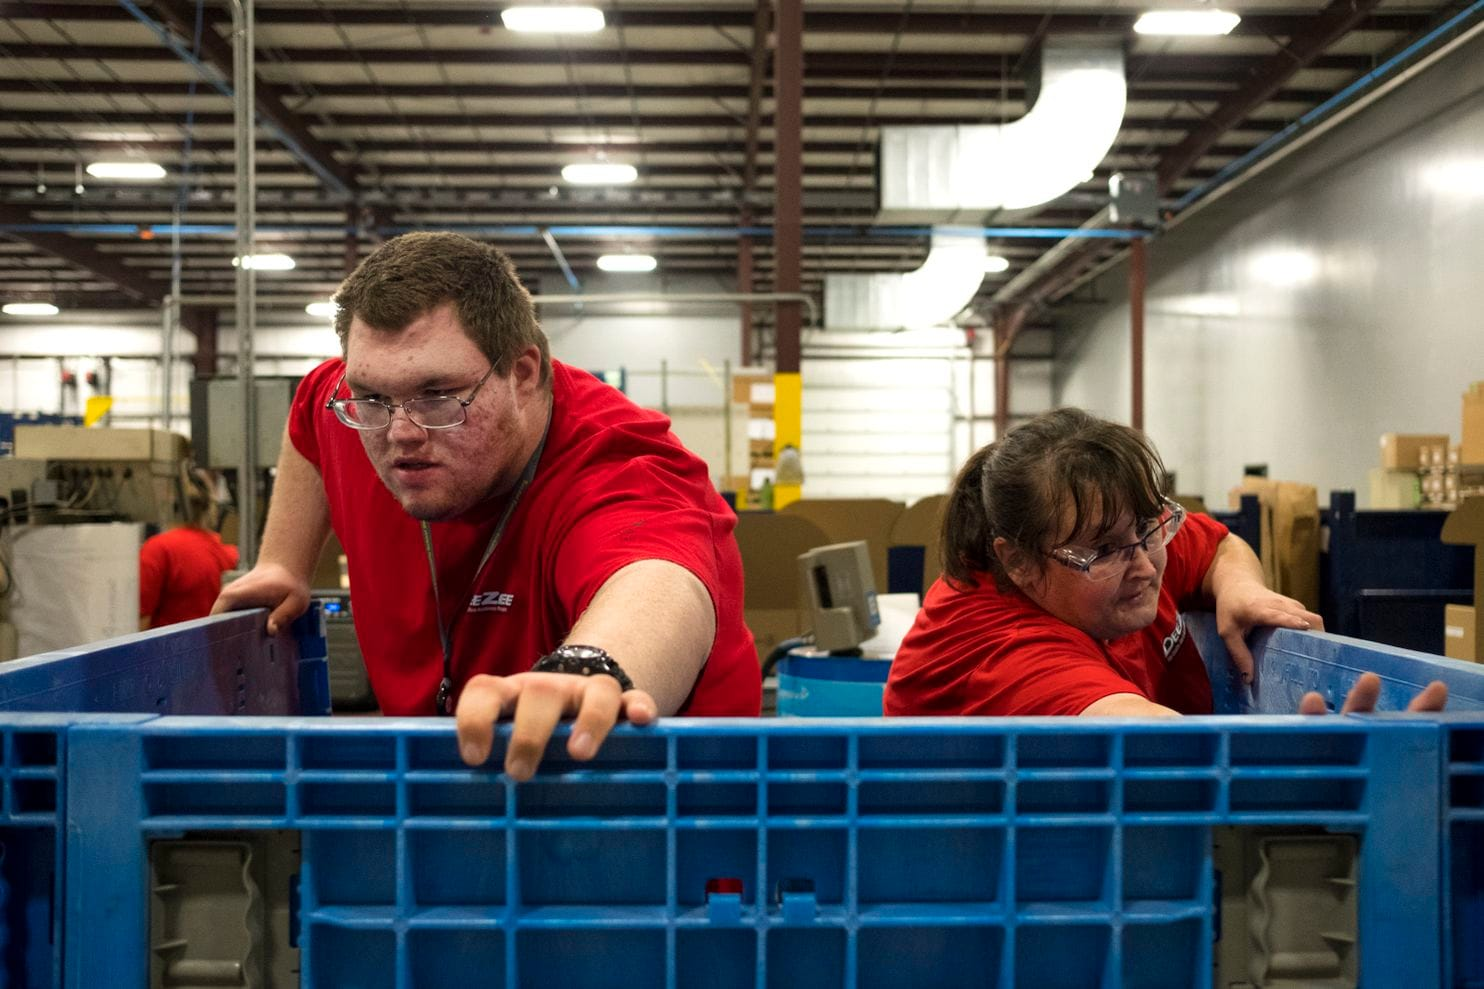 Channon and Miller open a crate at Dee Zee. More U.S. firms are partnering with local organizations that support people with disabilities to recruit them and hire leaders to monitor their retention. (Calla Kessler/For The Washington Post)